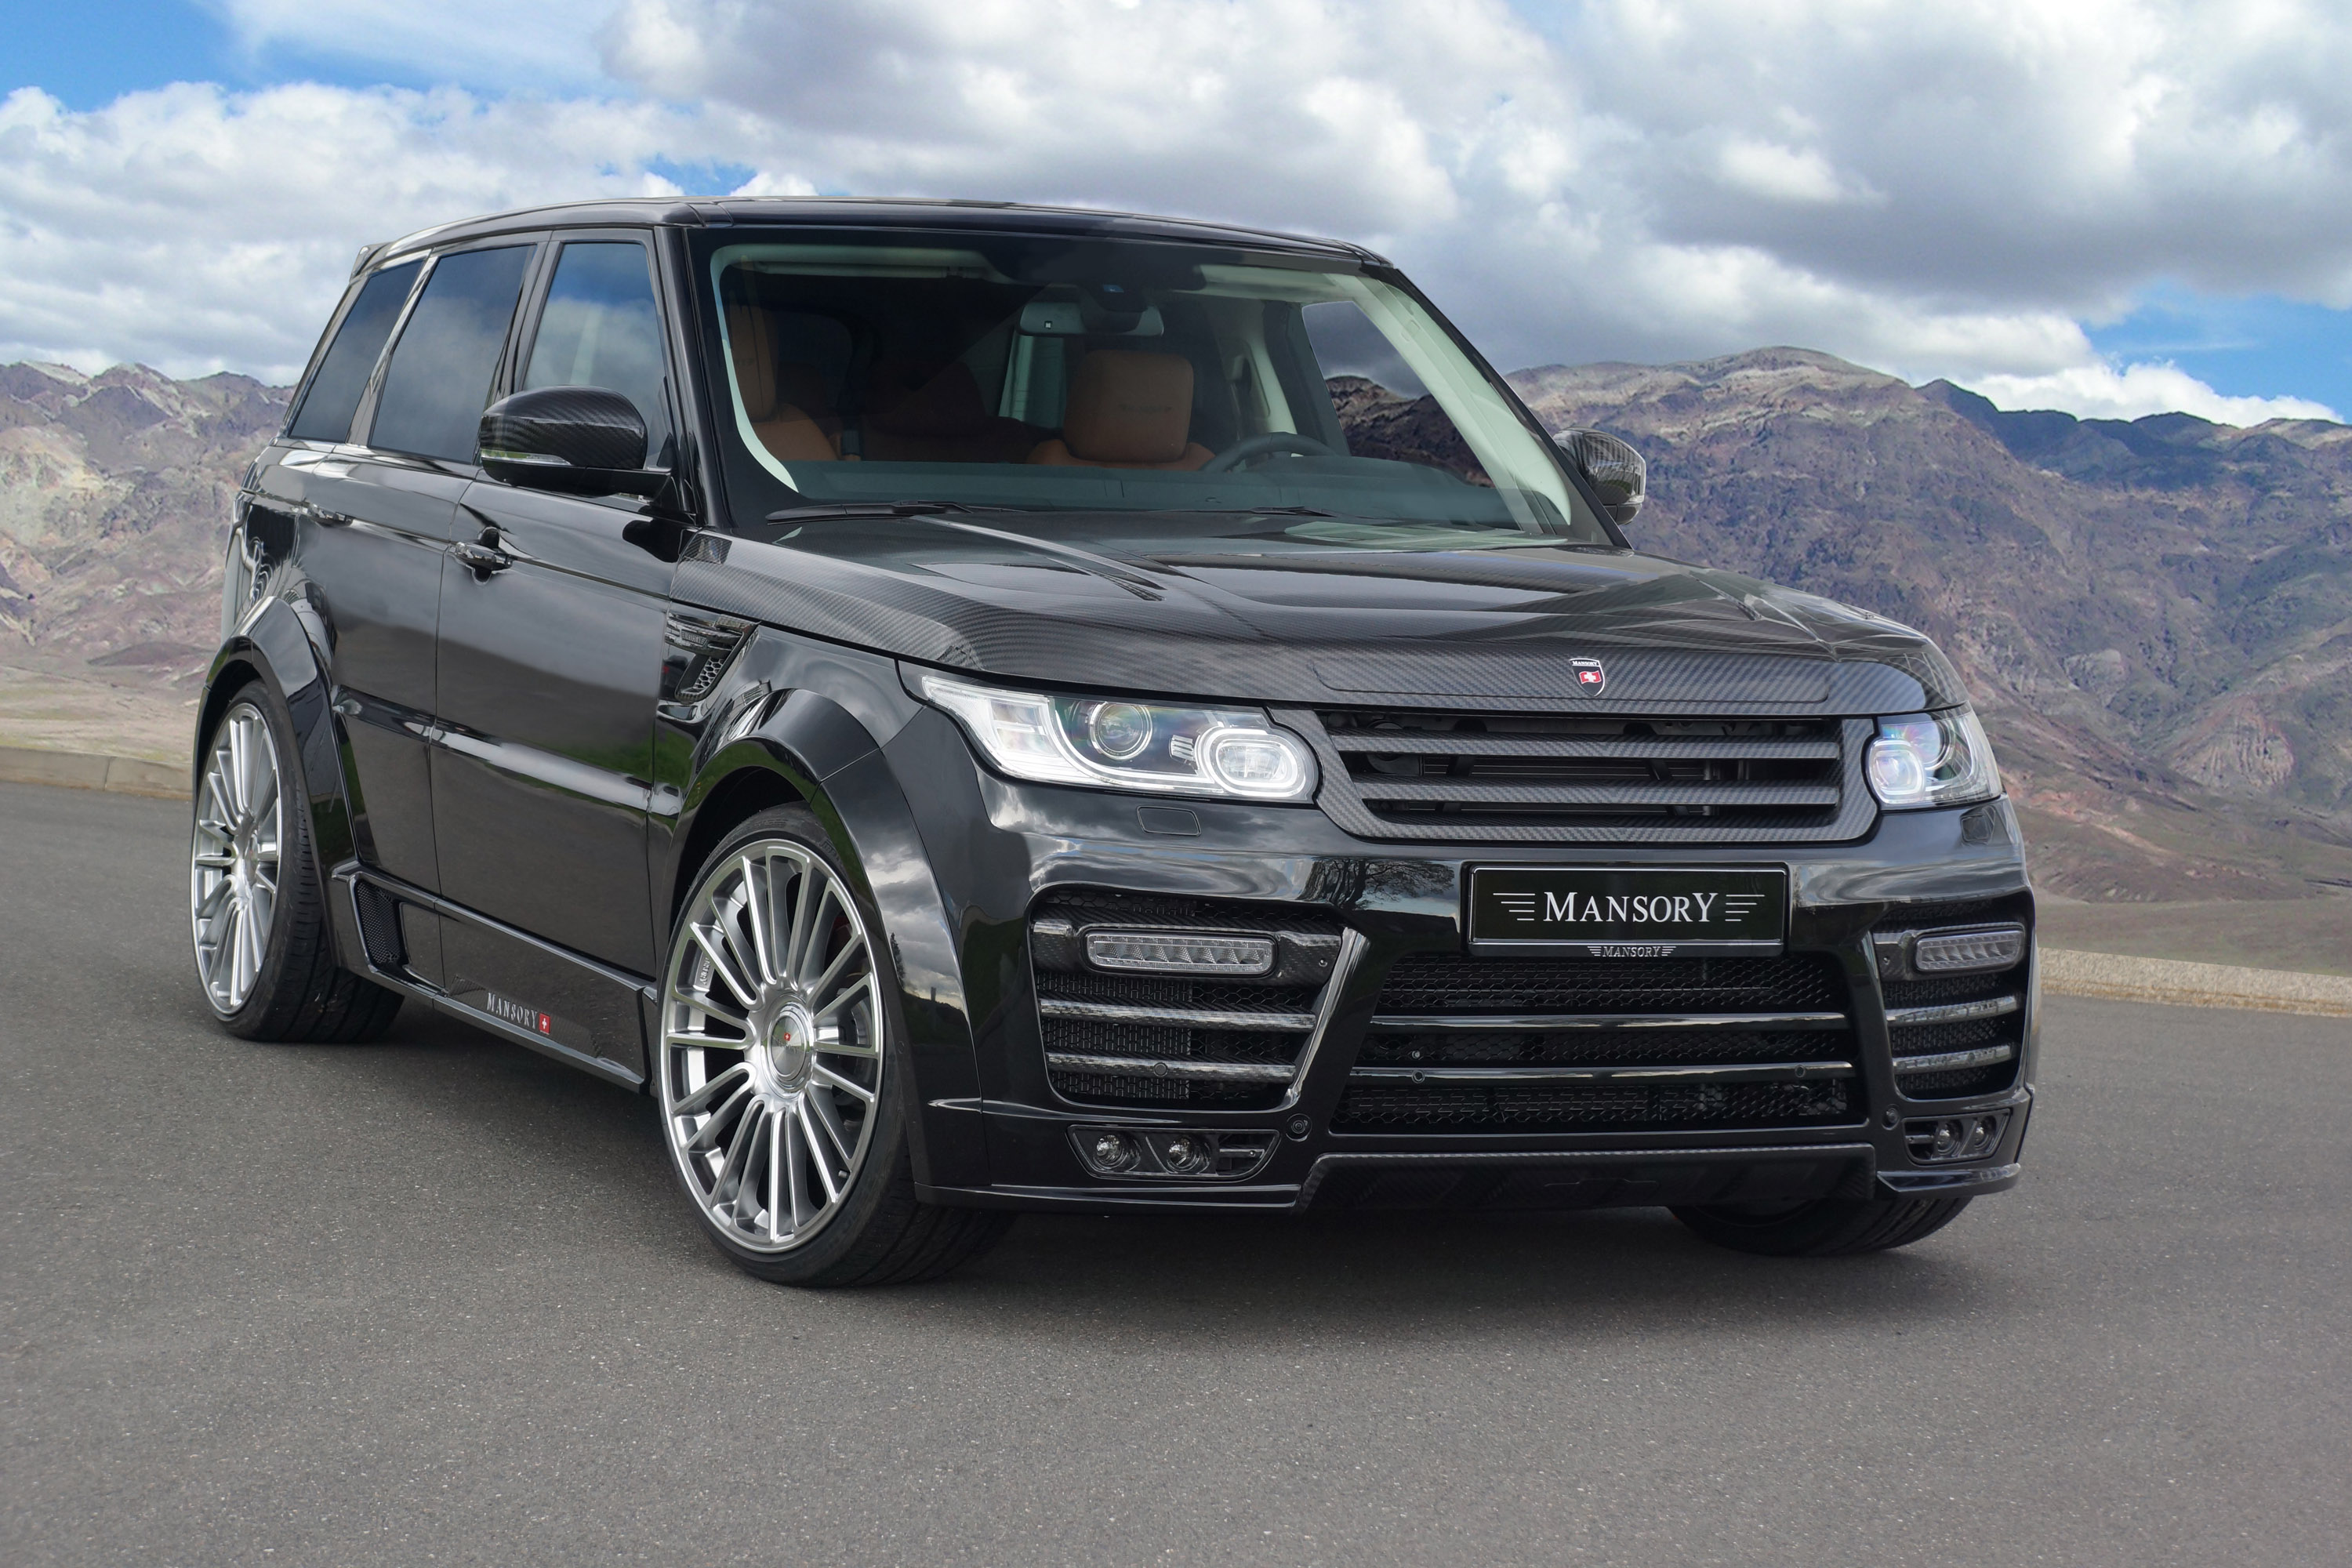 Mansory Range Rover Sport photo #1